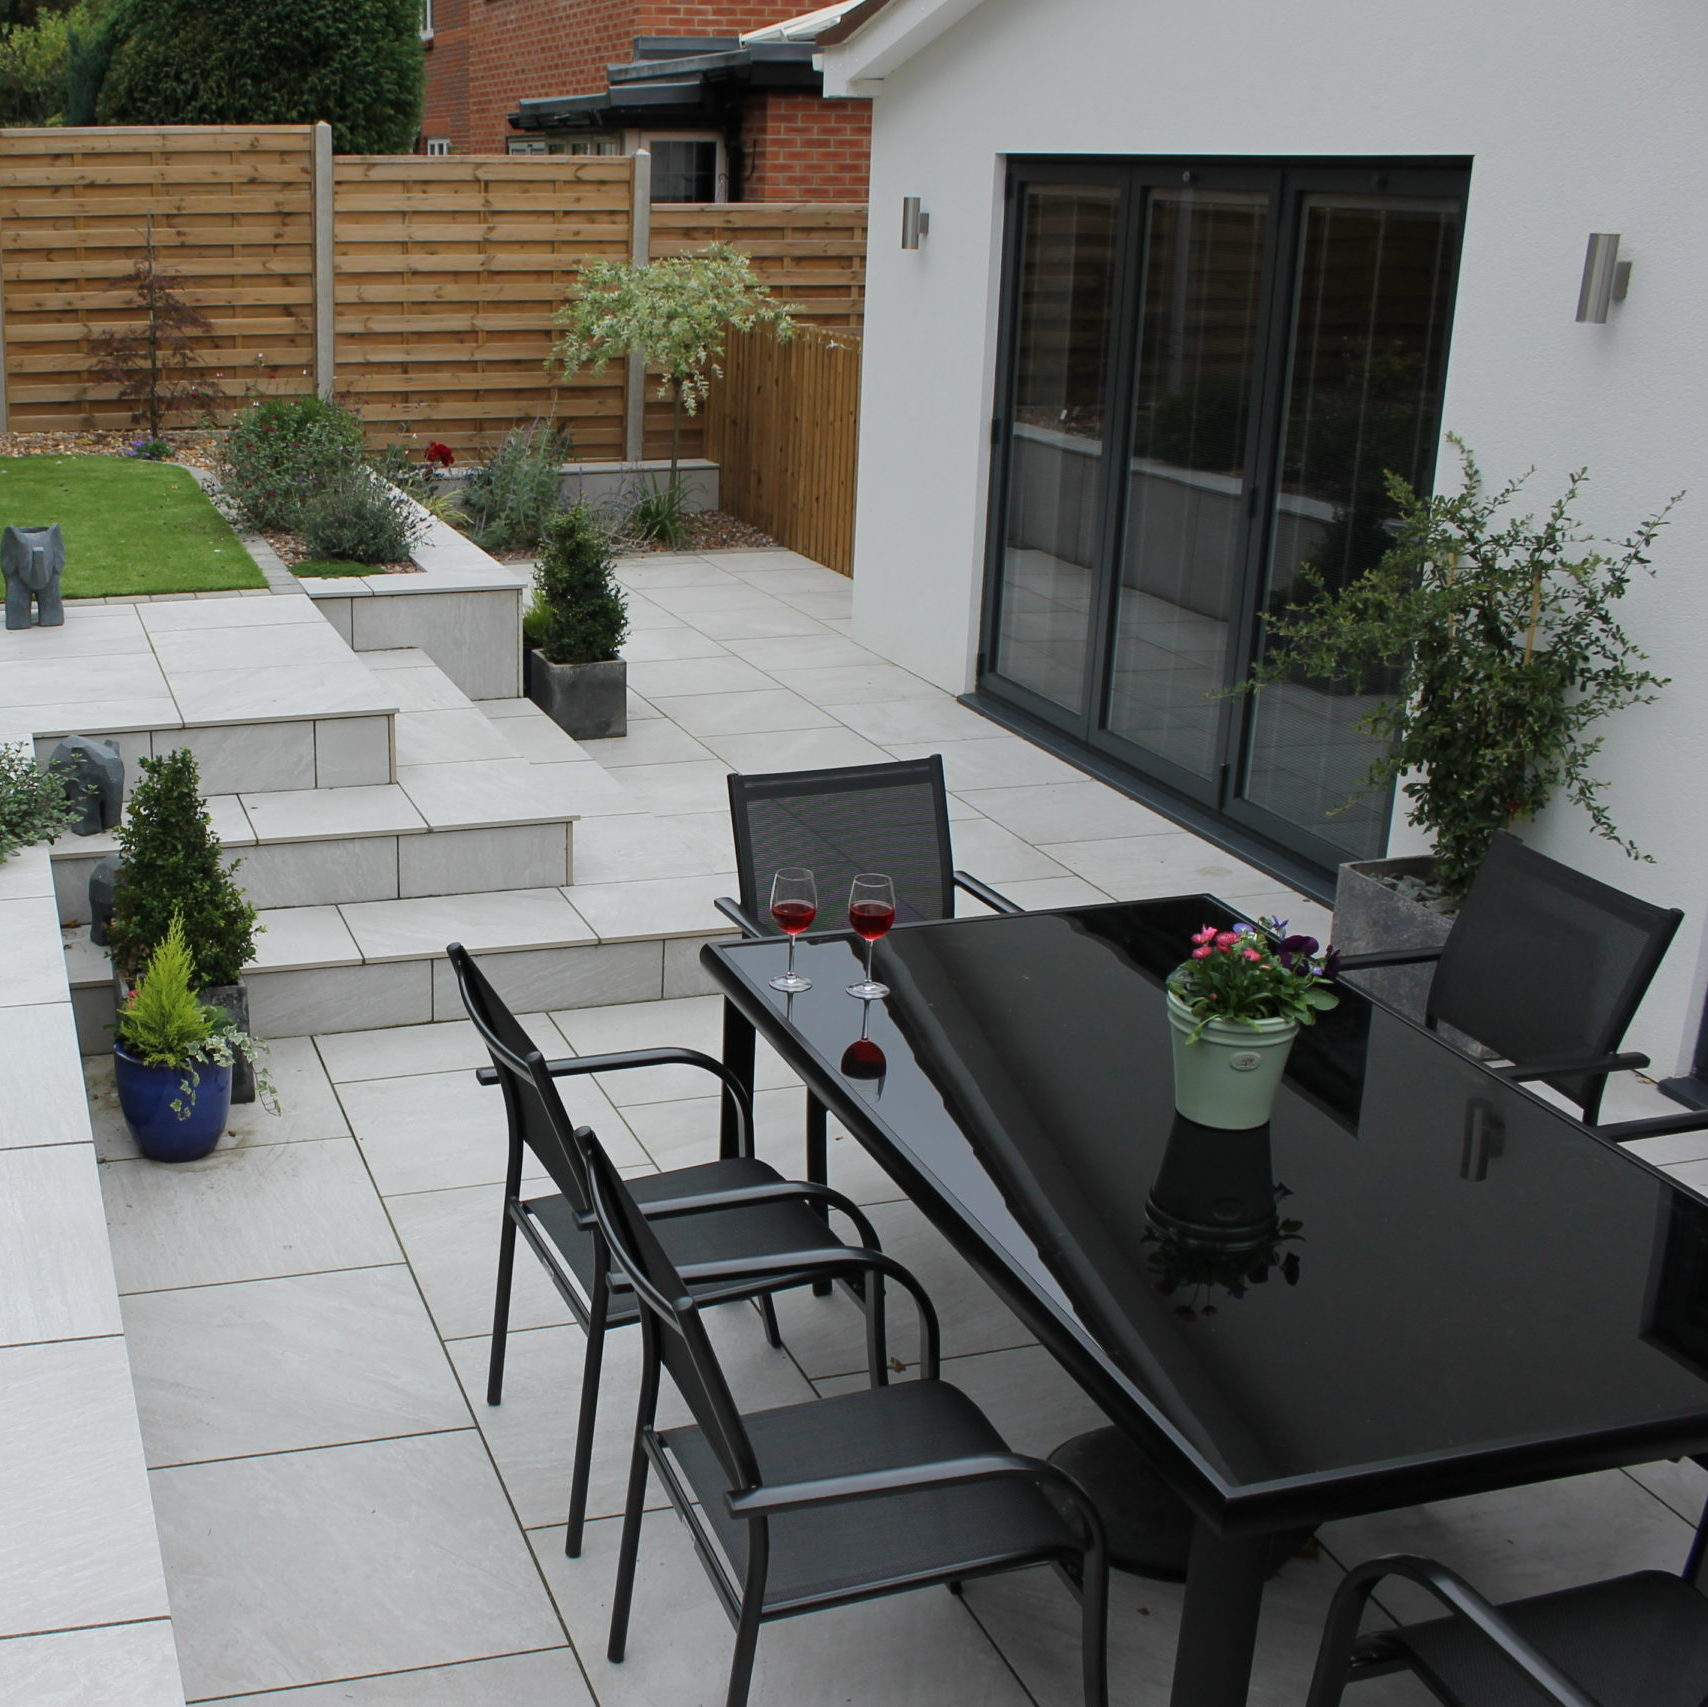 White Patio with black garden furniture and raised grass